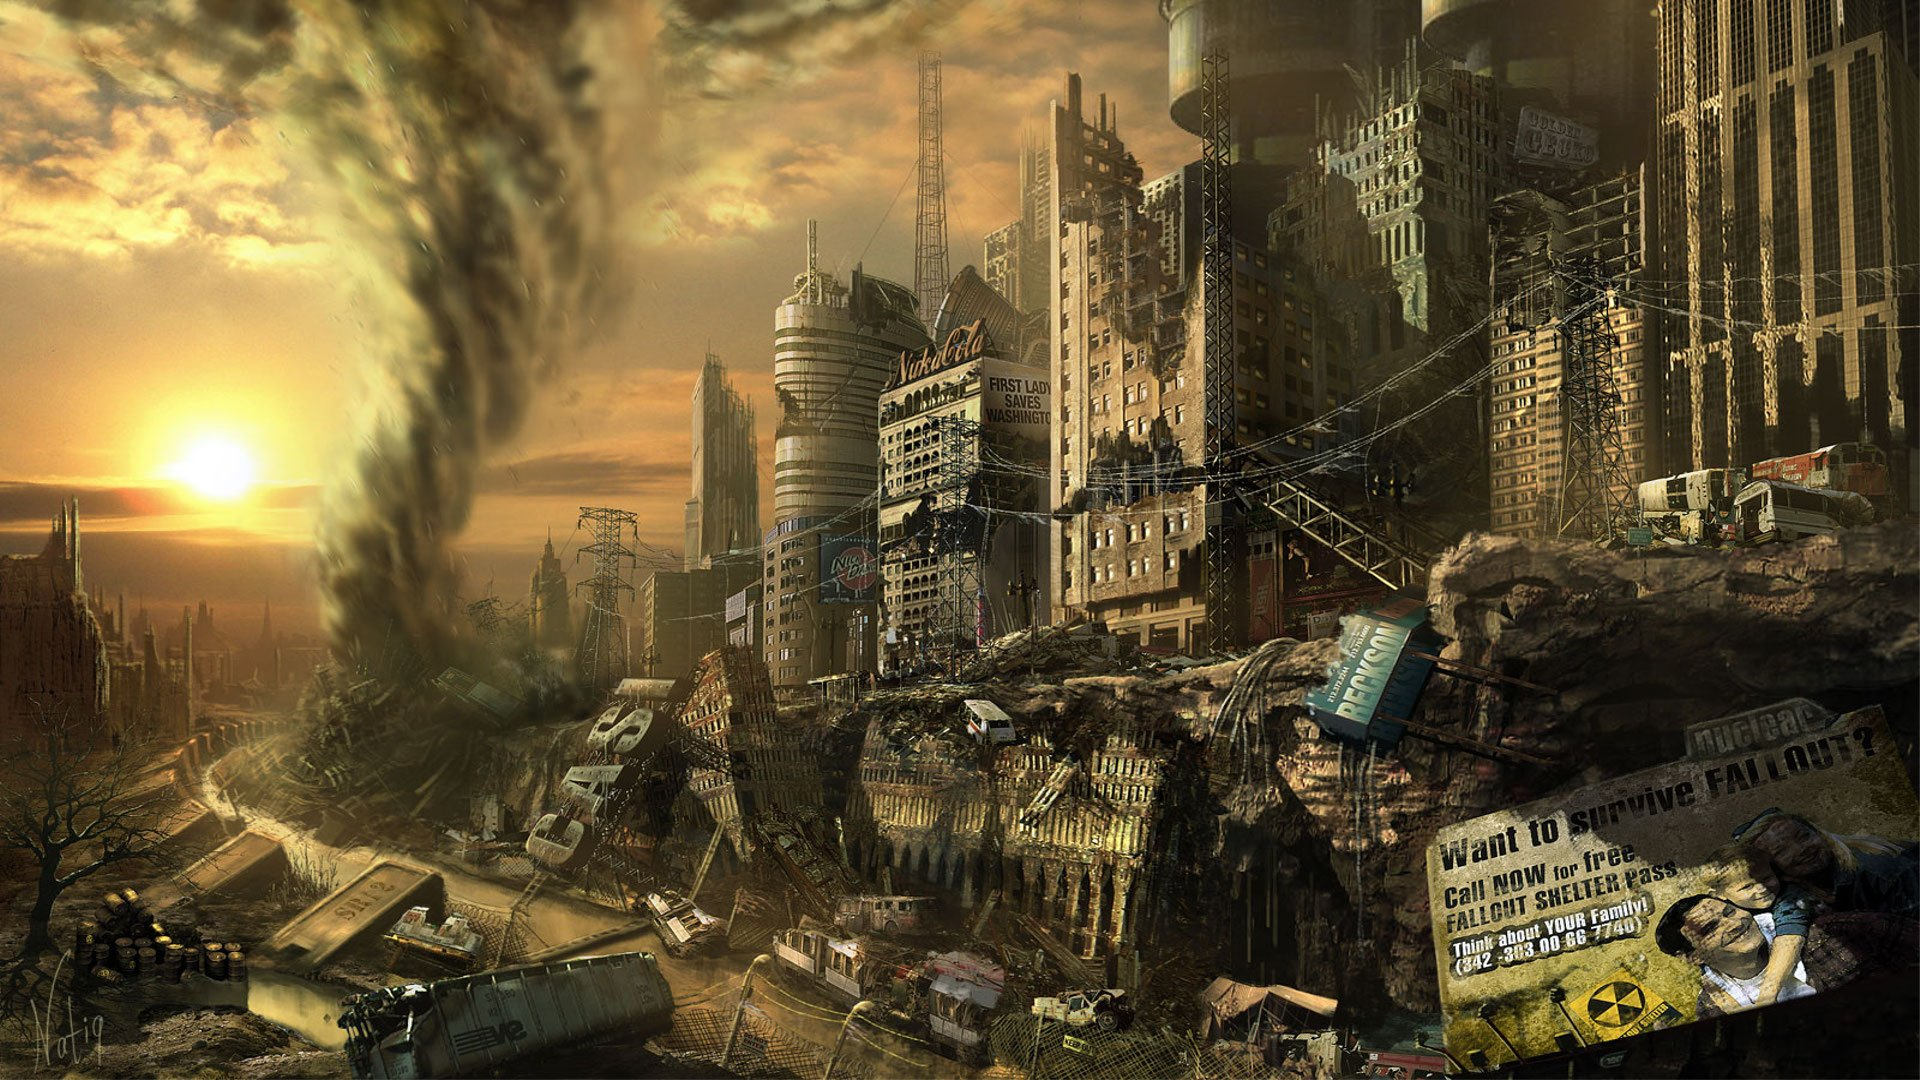 wallpaper wallpapers helicopters resolution high fallout 1920x1080 1920x1080